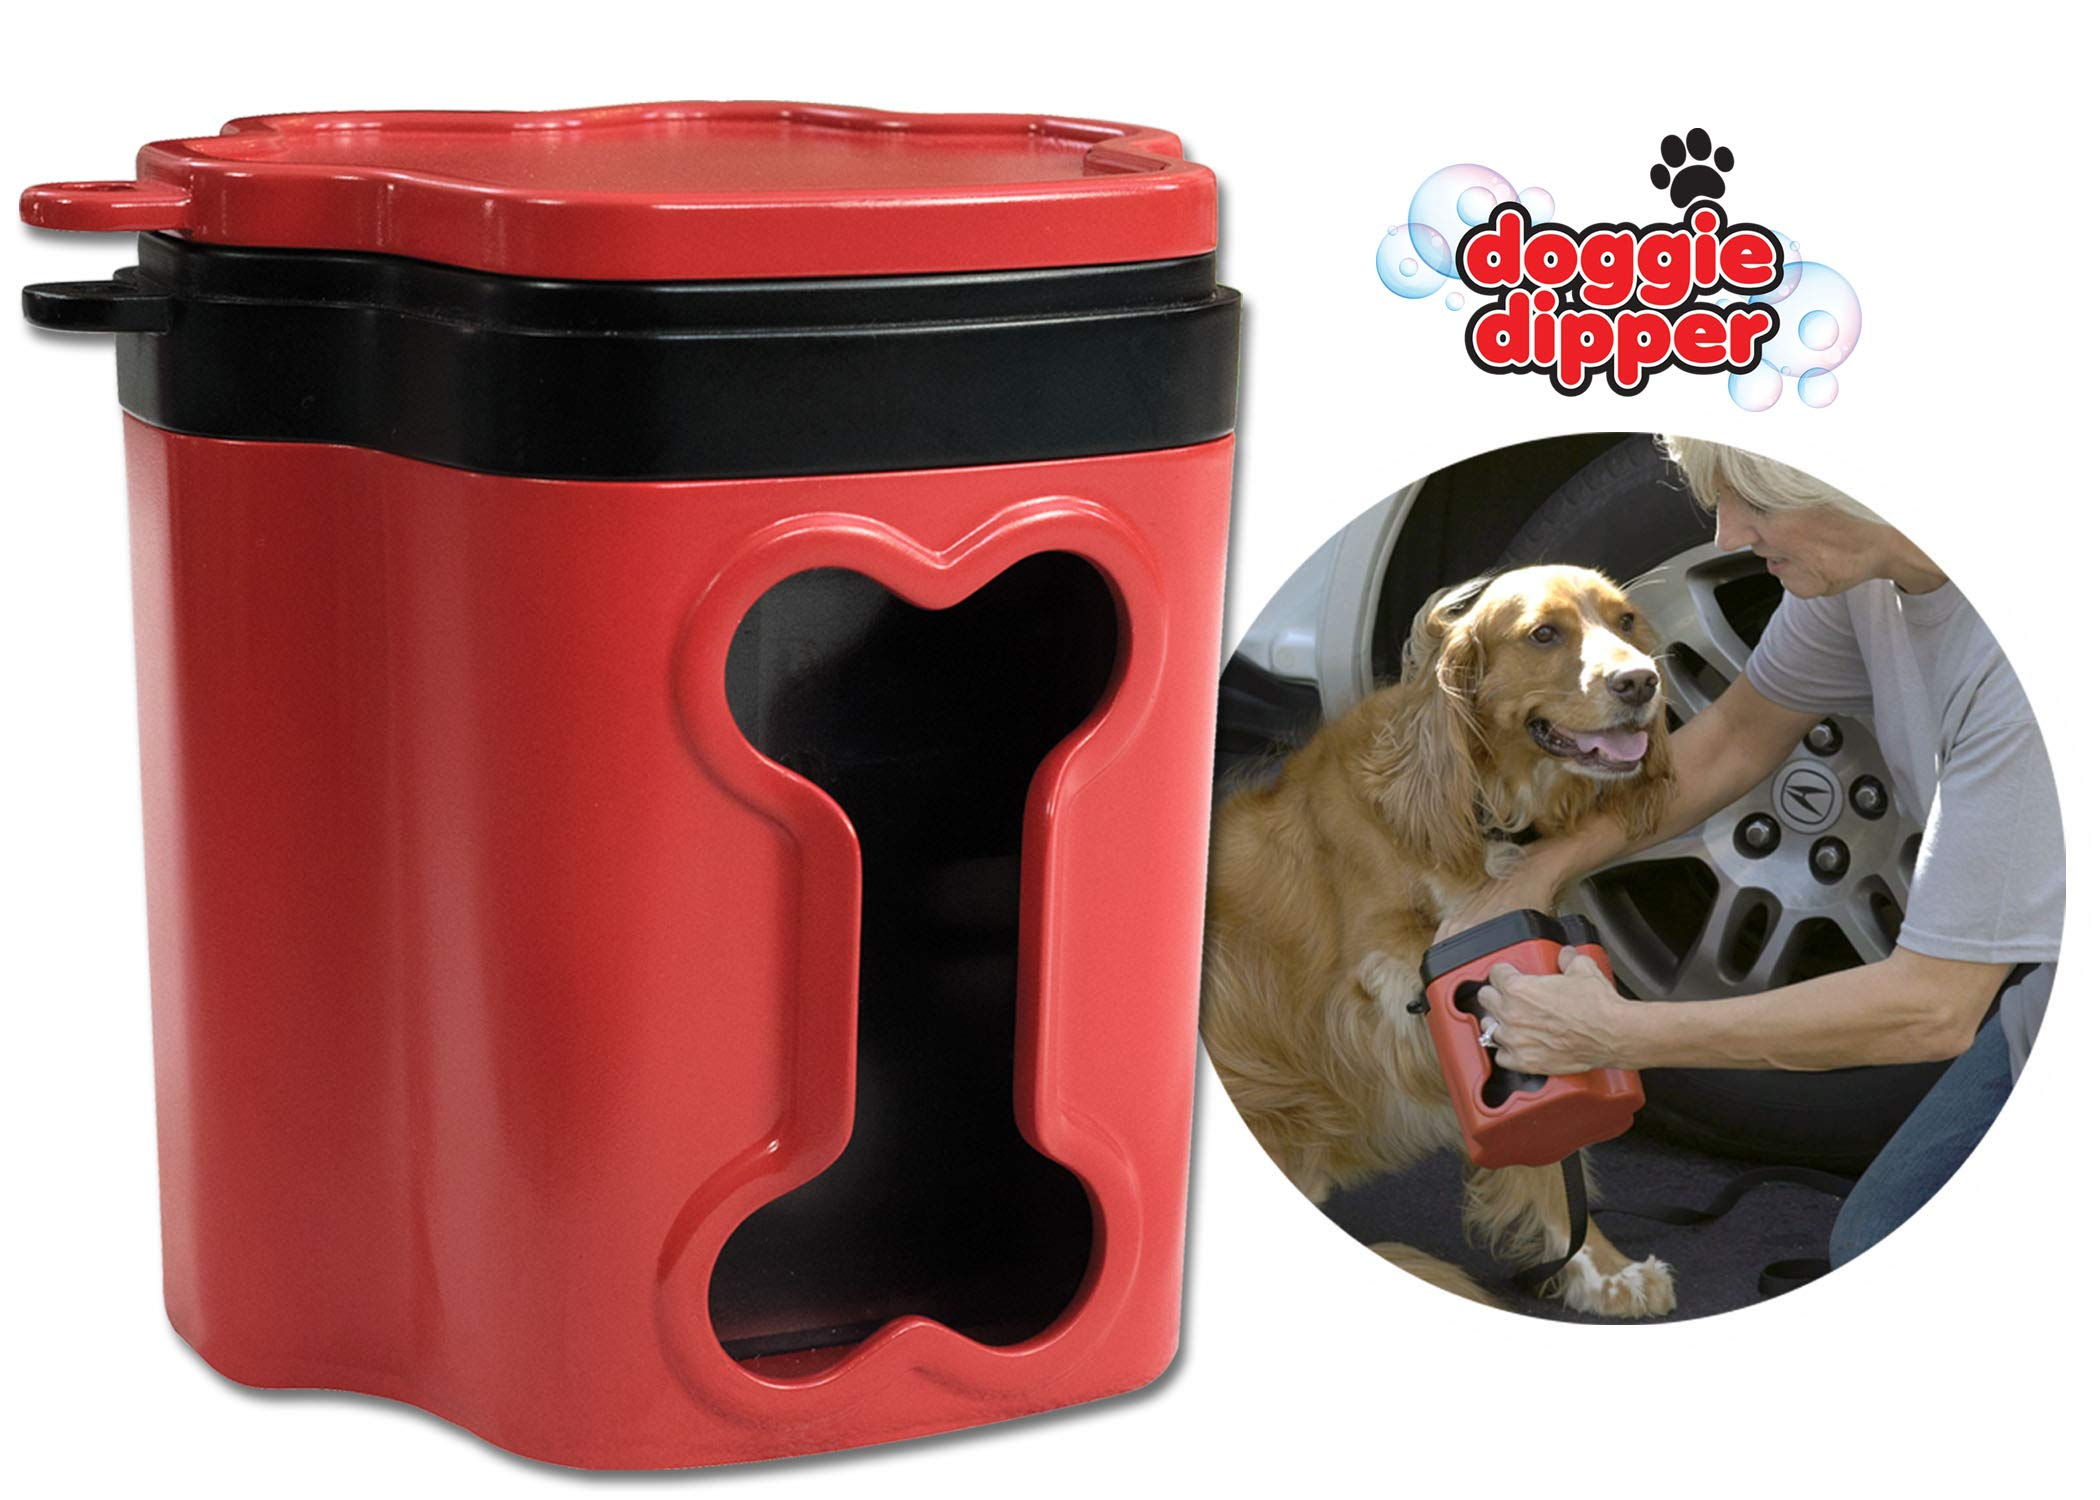 Doggie Dipper - Portable Dog Paw Cleaner/Washer - Quick & Easy to use - Keeps Furniture and Carpet Away from Muddy Paws - Comfortable Silicone Dog Feet Cleaner